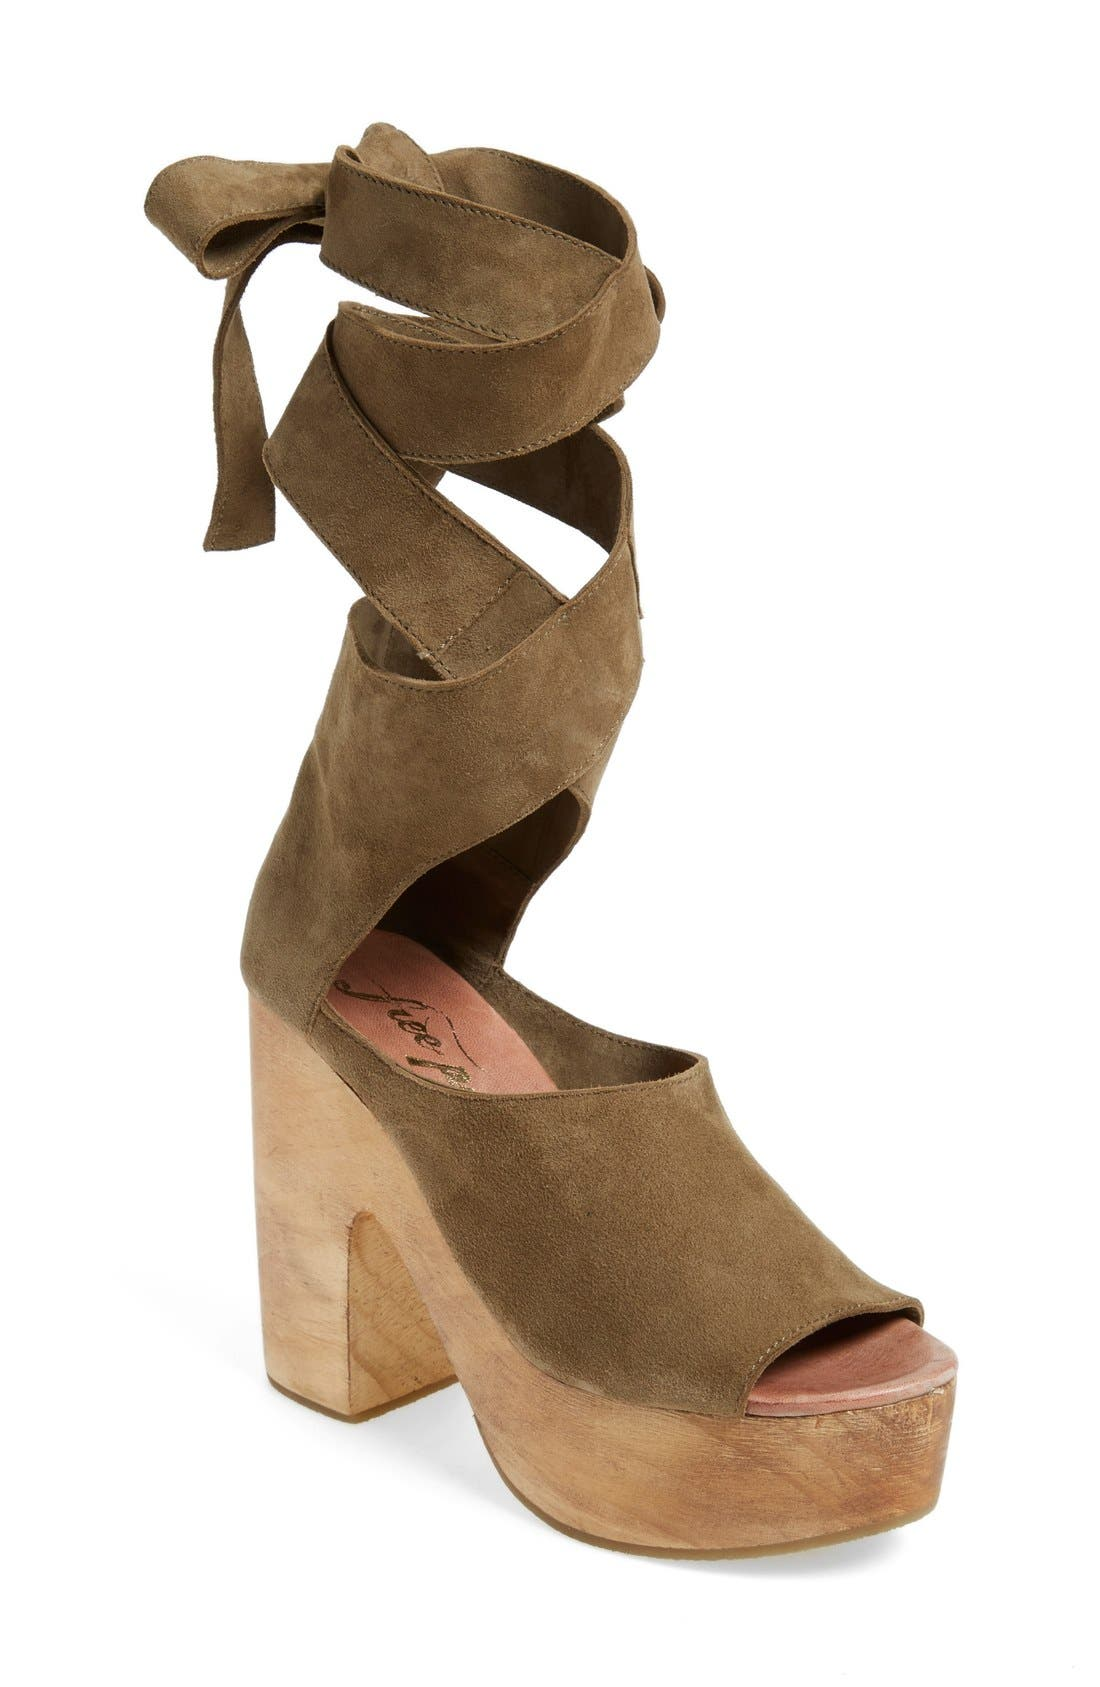 Alternate Image 1 Selected - Free People 'Touch the Sky' Wrap Platform Clog Sandal (Women)